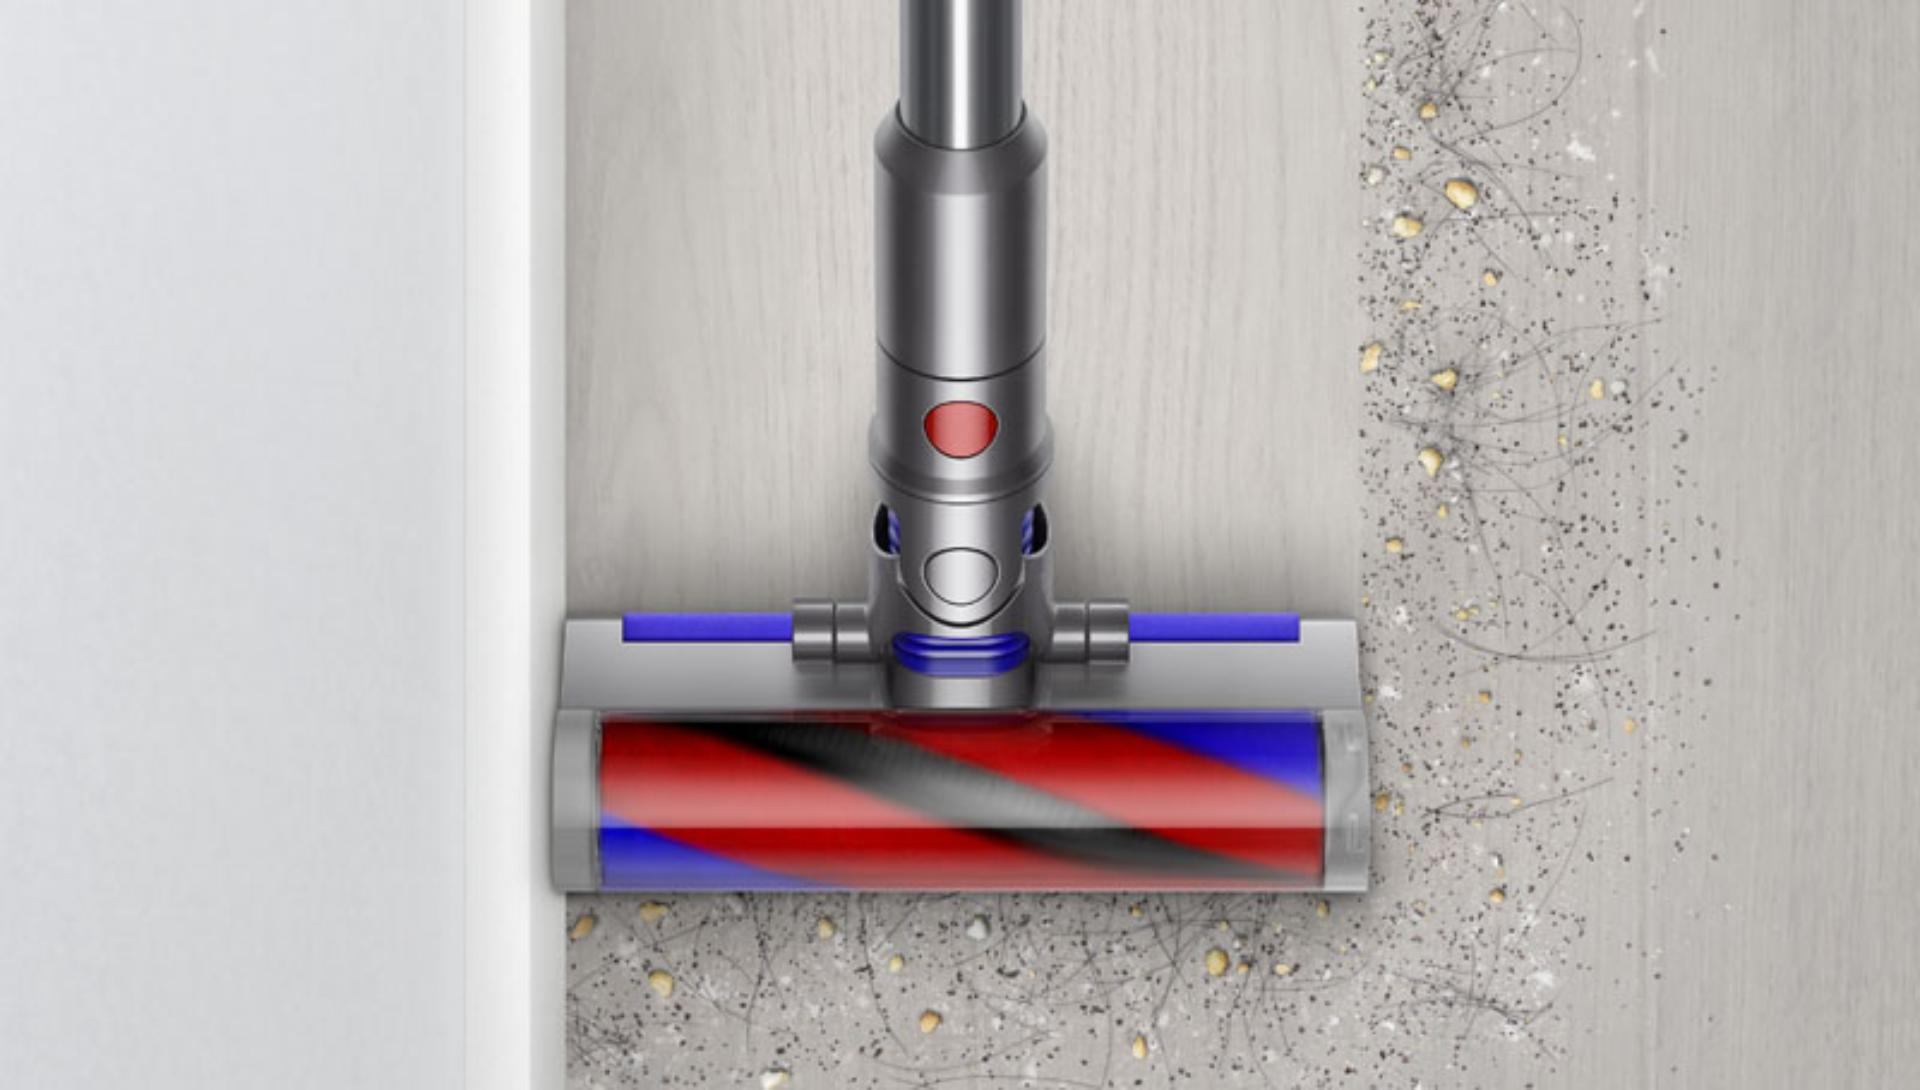 Dyson Micro 1.5kg cleaner head cleaning next to a wall